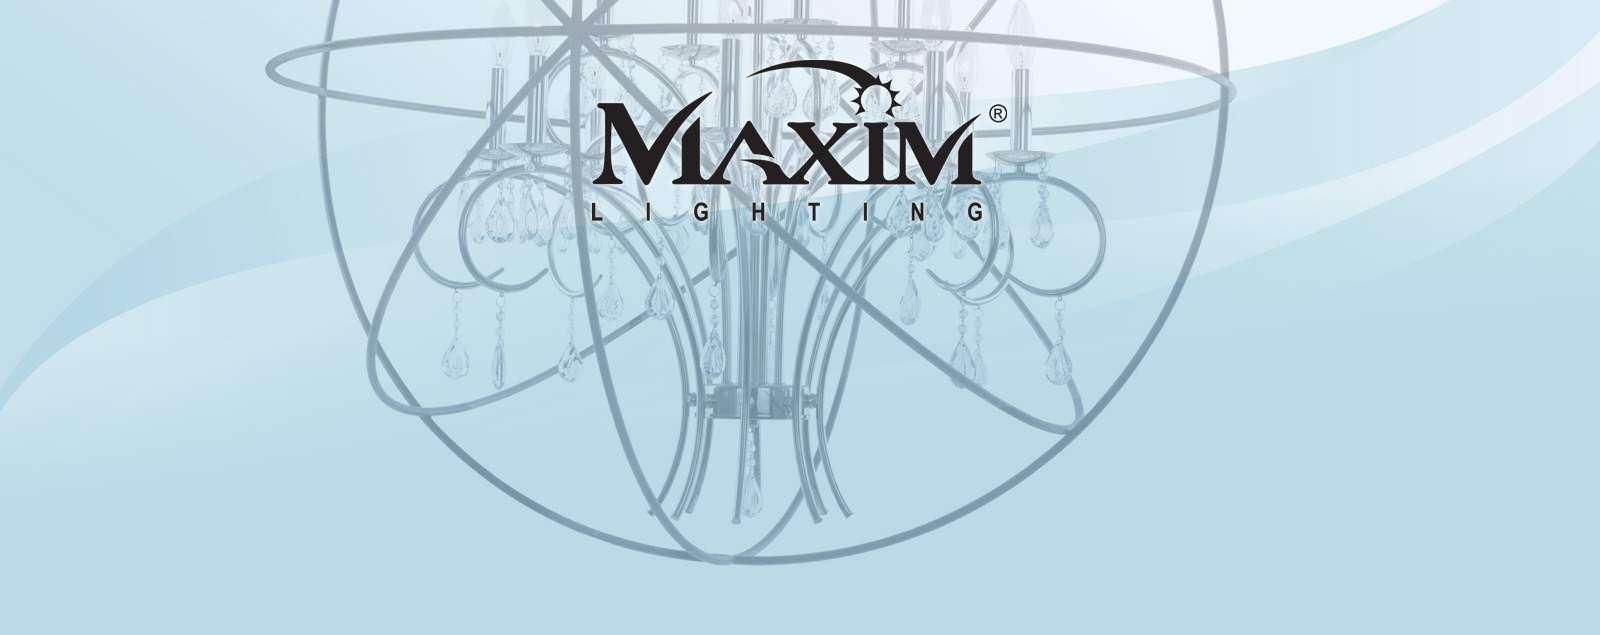 Maxim Lighting - Chandeliers - Outdoor Flush Mounts - Shades and Glass